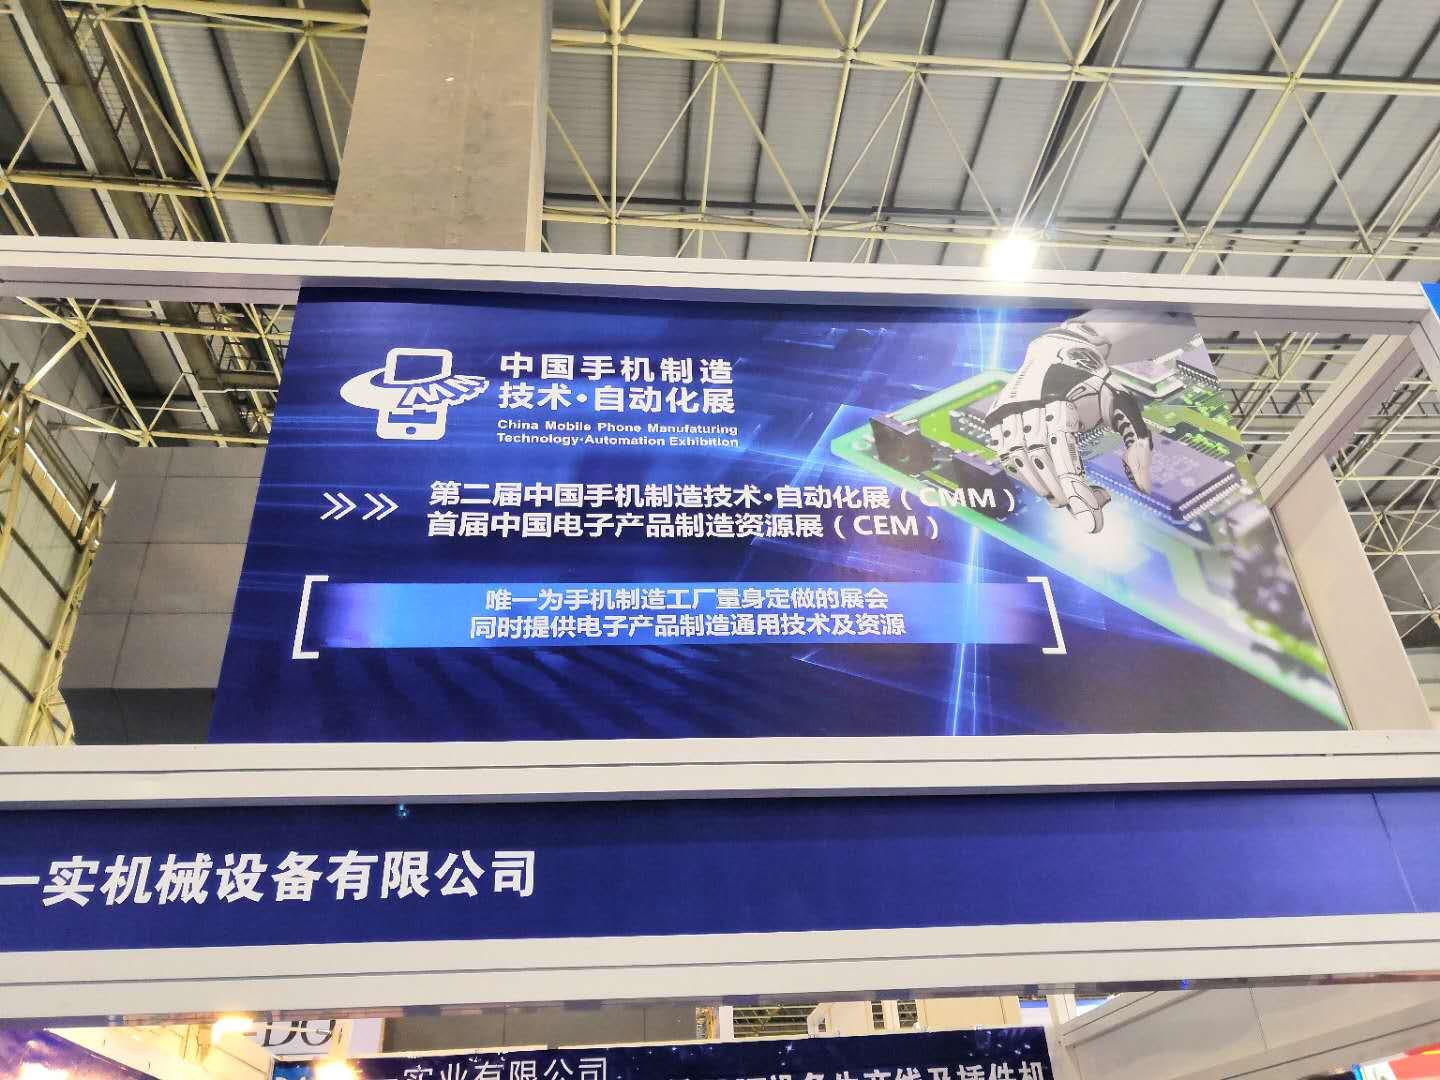 Heyi-The Second China Automation Exhibition of Mobile Phone Manufacturing Technology | Info·center-1